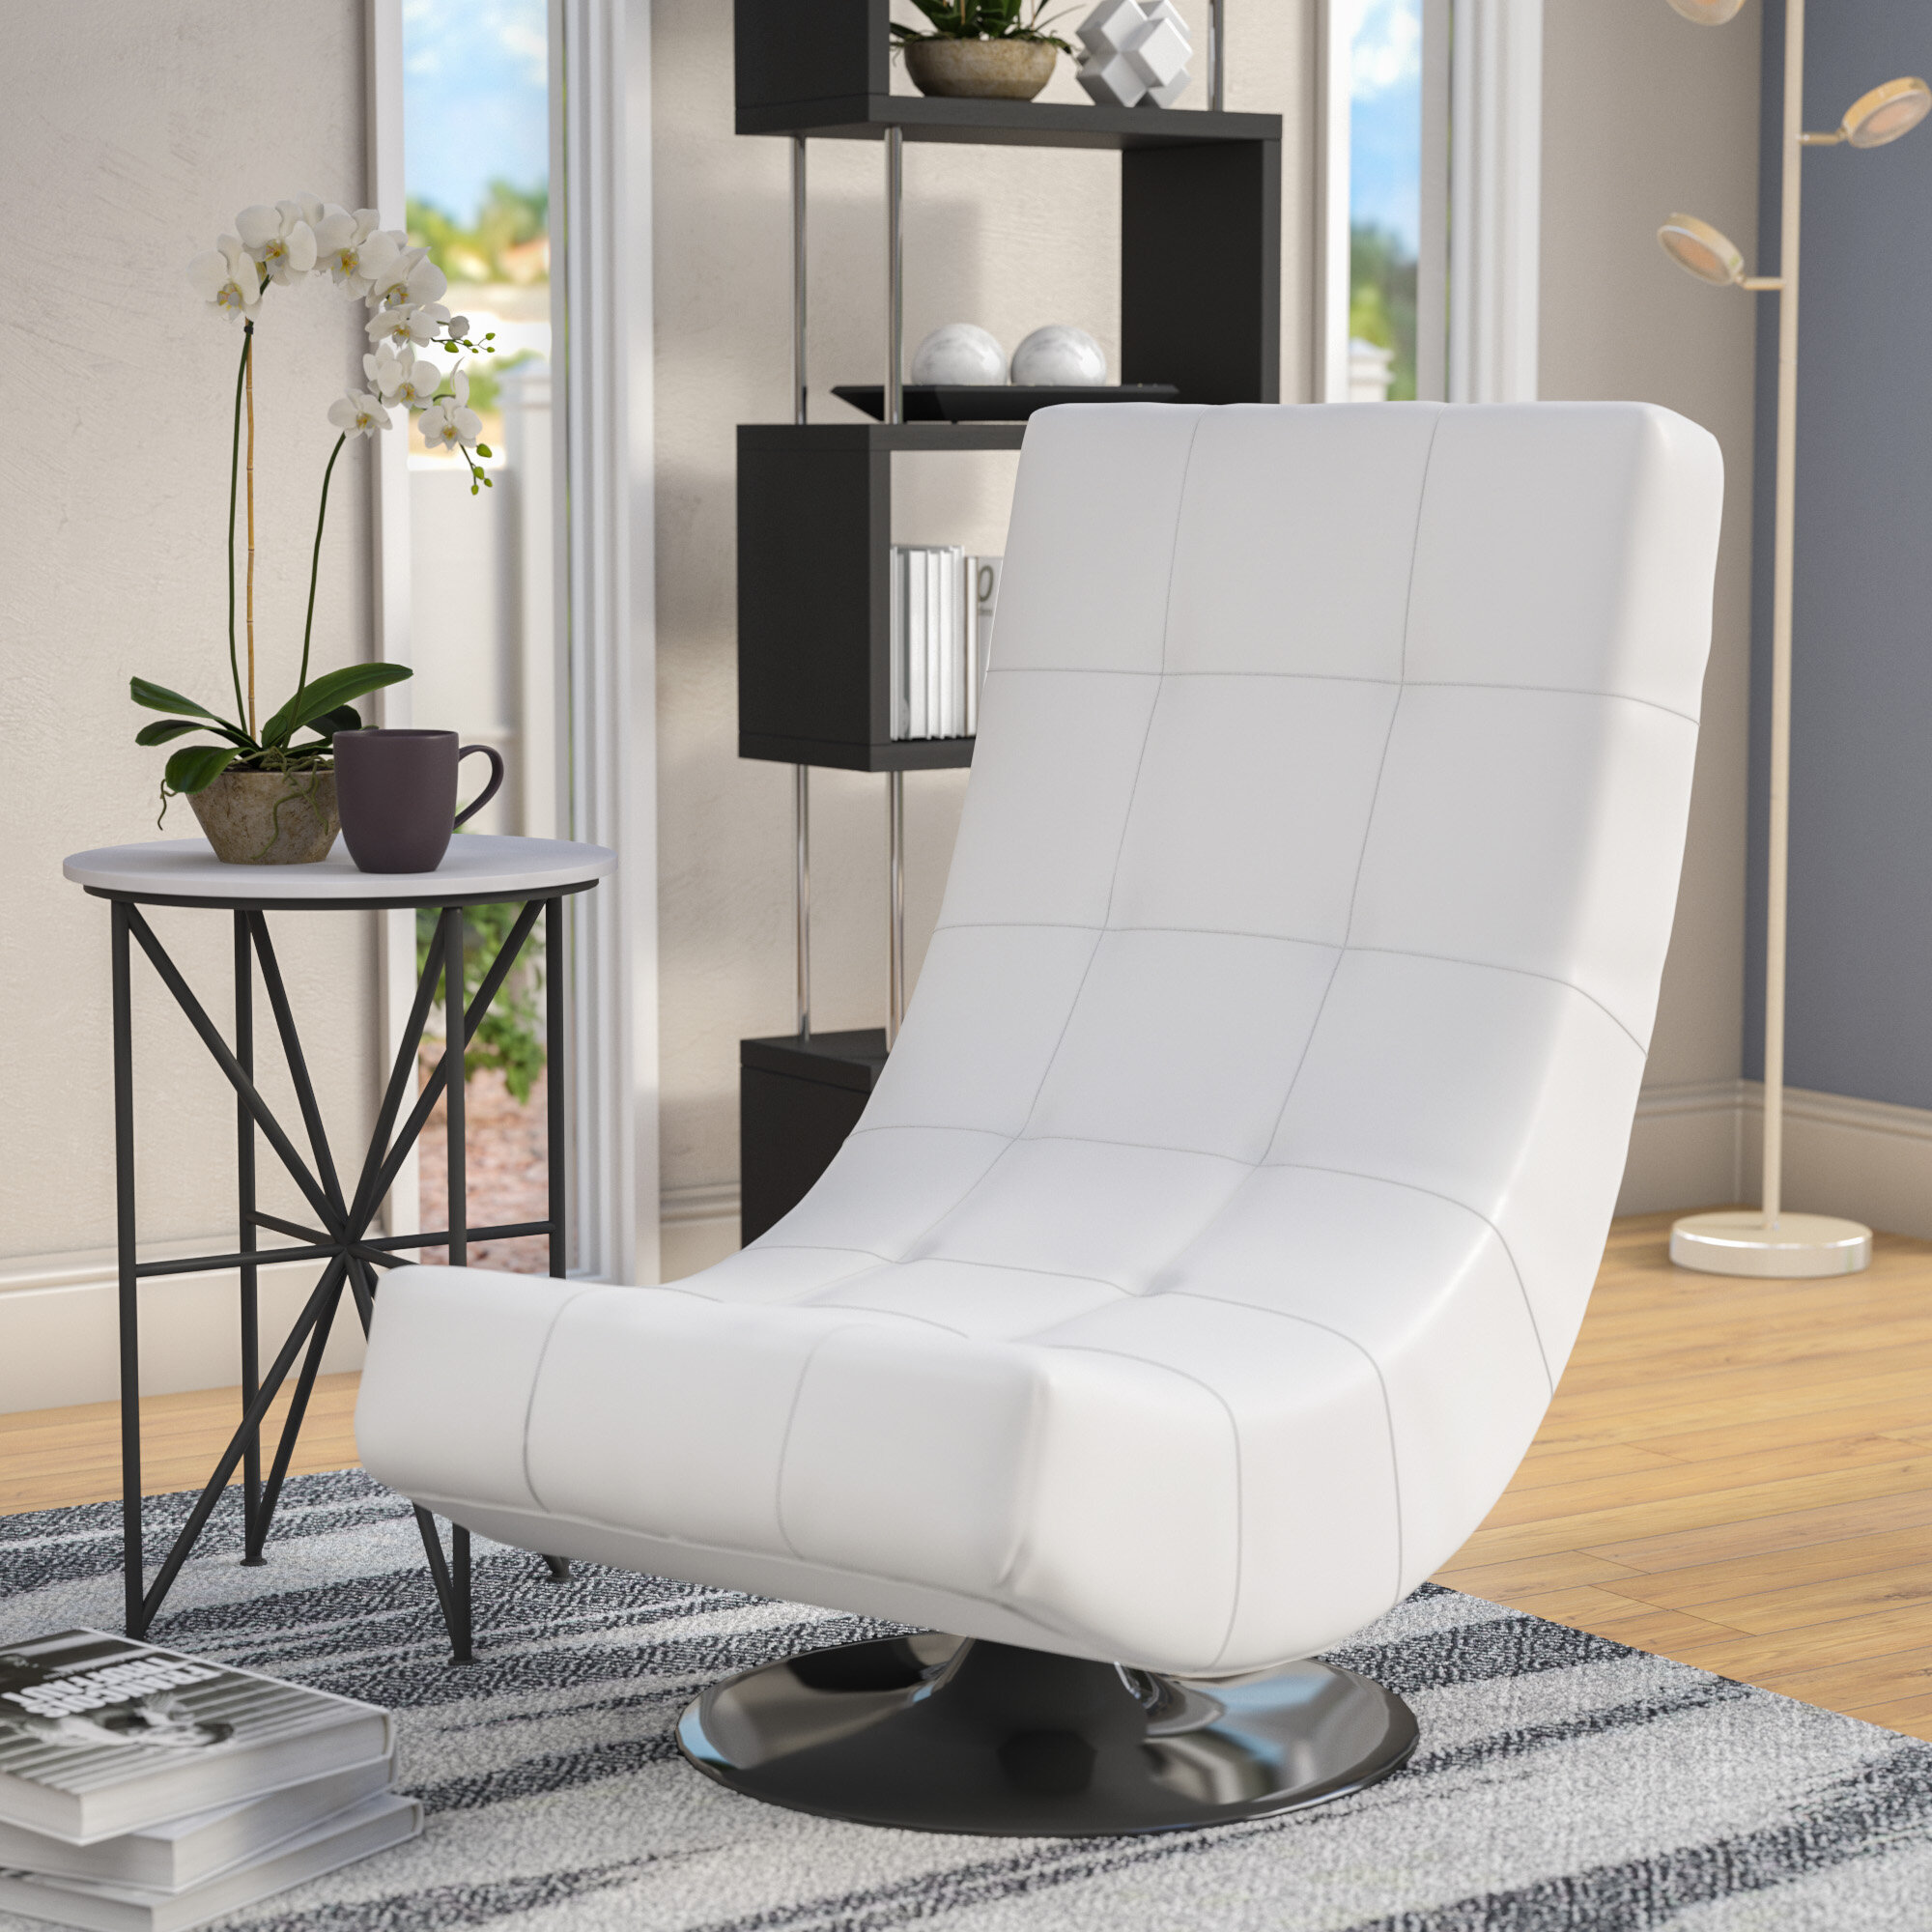 Fabulous Wade Logan Helle Swivel Lounge Chair Reviews Wayfair Pabps2019 Chair Design Images Pabps2019Com